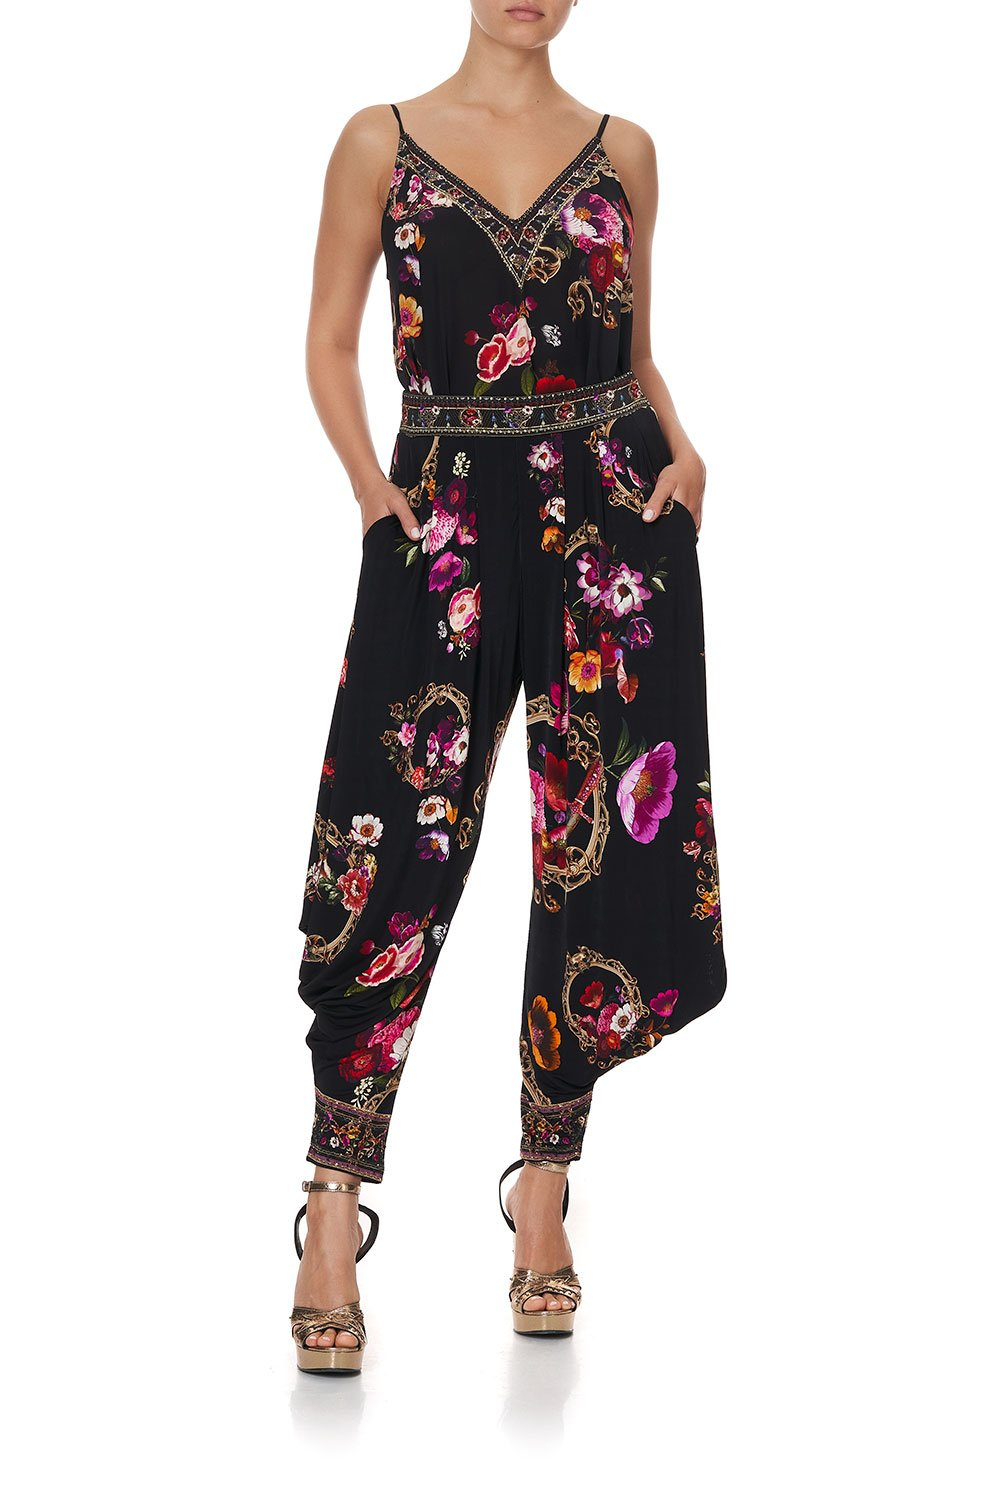 JERSEY DRAPE PANT WITH POCKET MIRROR MIRROR